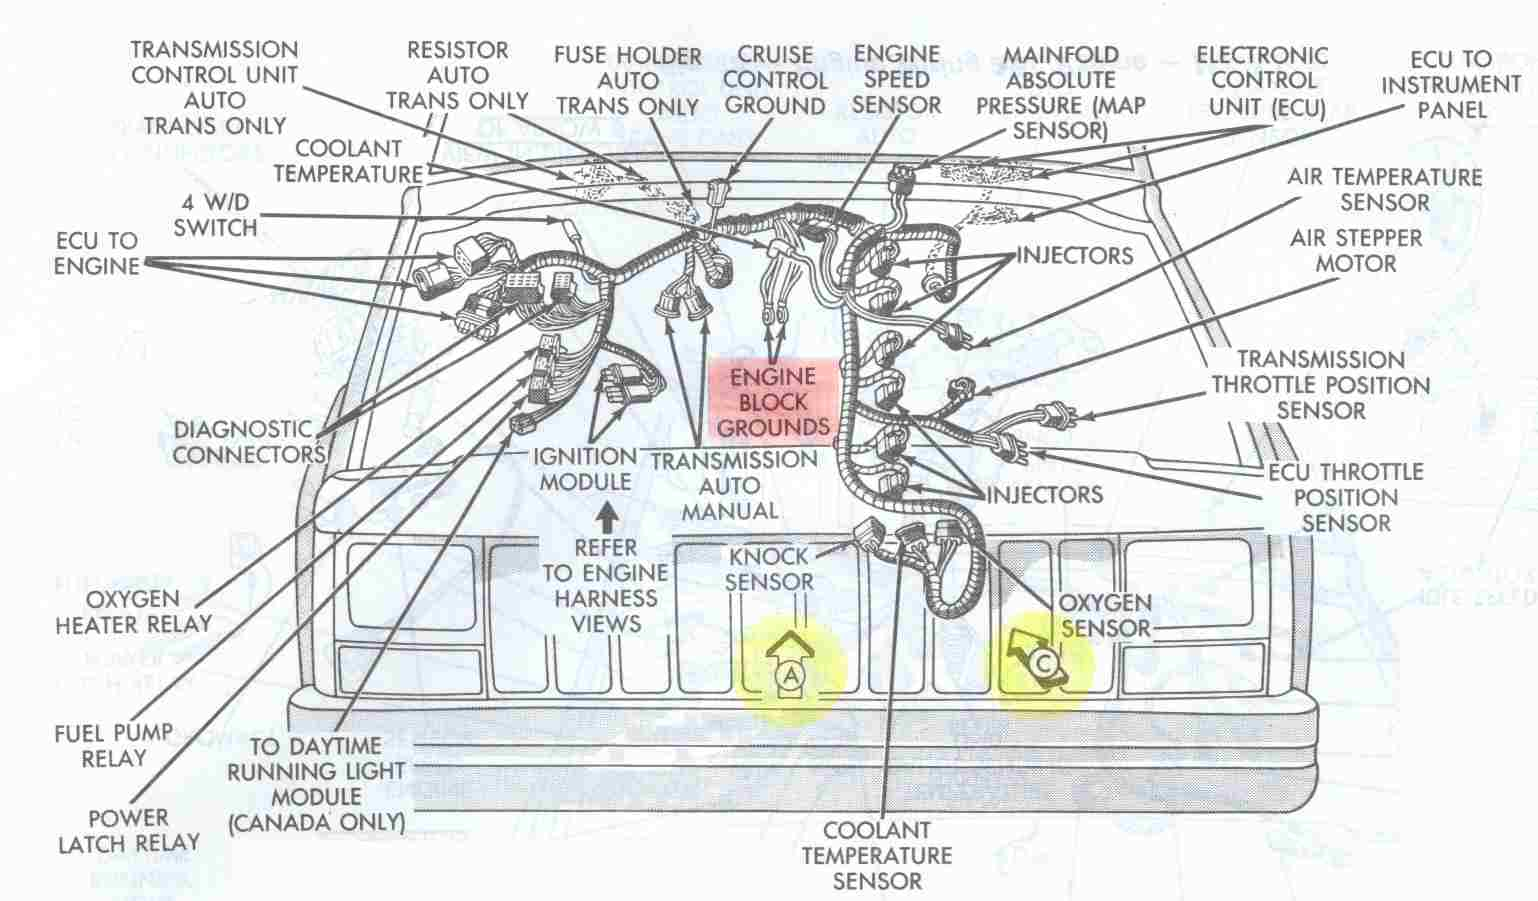 Electrical_Engine_Ground_Points_Overview jeep cherokee electrical diagnosing erratic behavior of engine 1994 jeep cherokee sport wiring diagram at soozxer.org